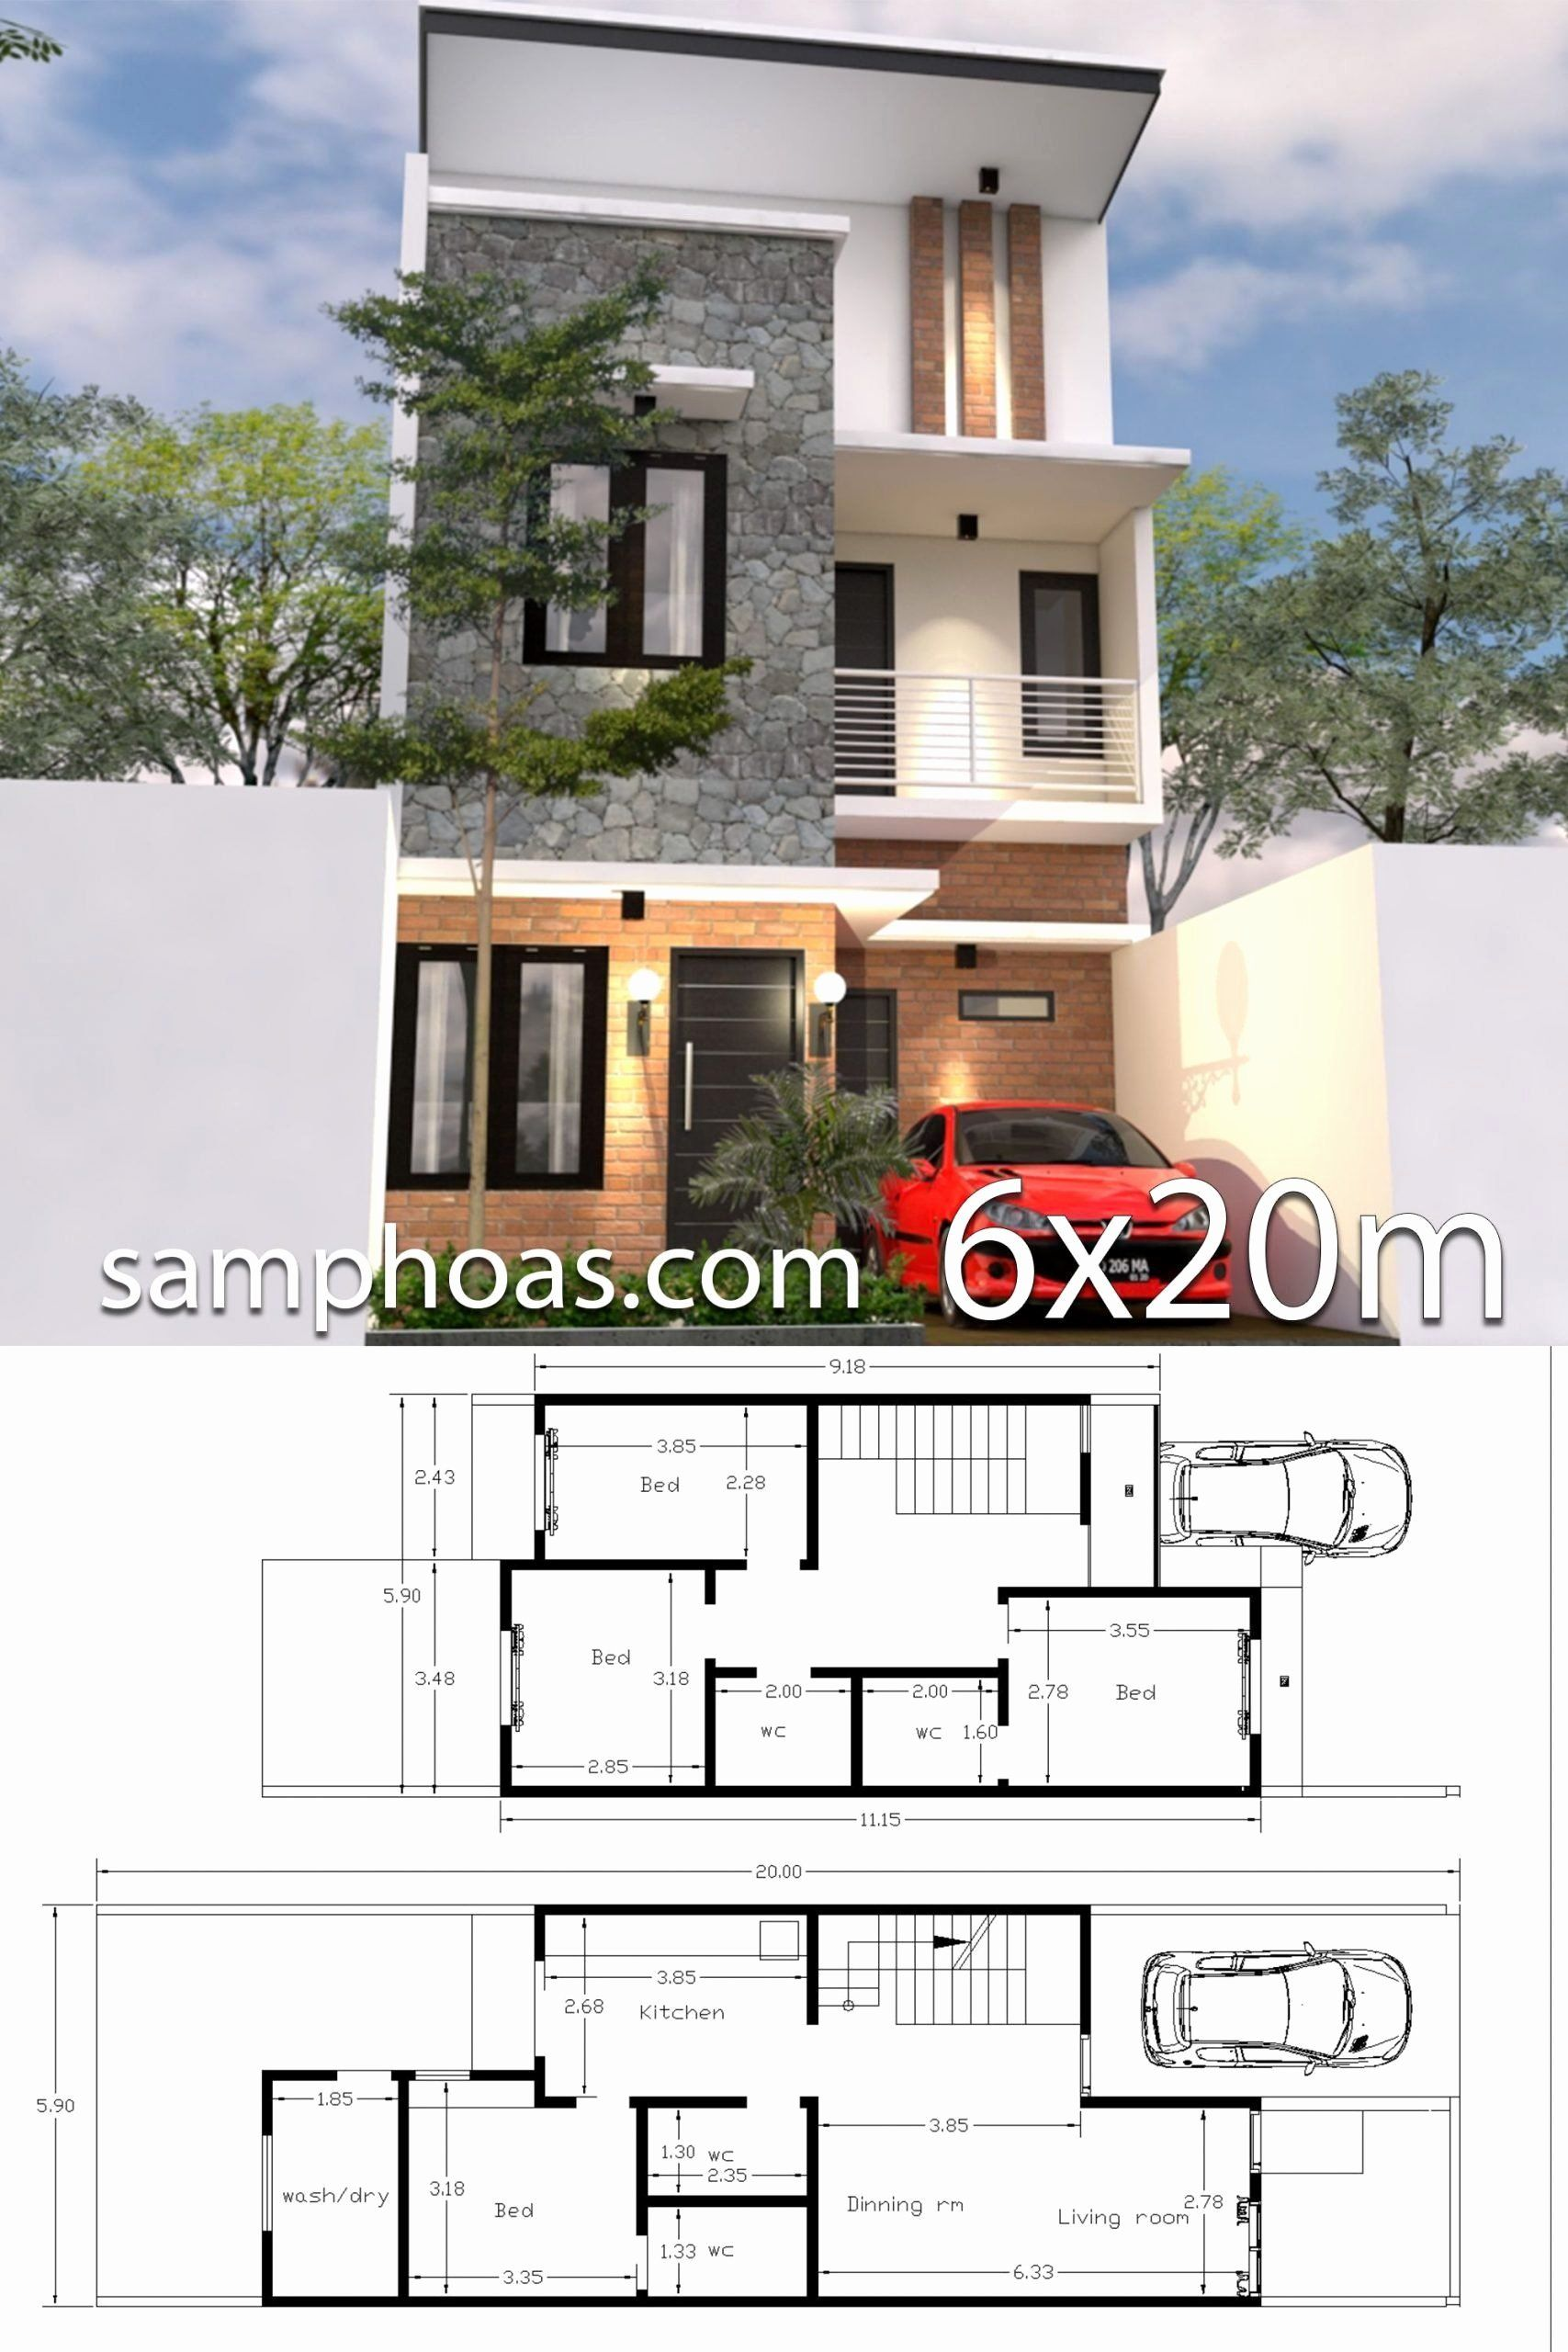 Best 3d Home Design Lovely Modern House Plans Designs 3d Sketchup Home Design 3d 6x20m 3d House Plans Model House Plan Architectural House Plans